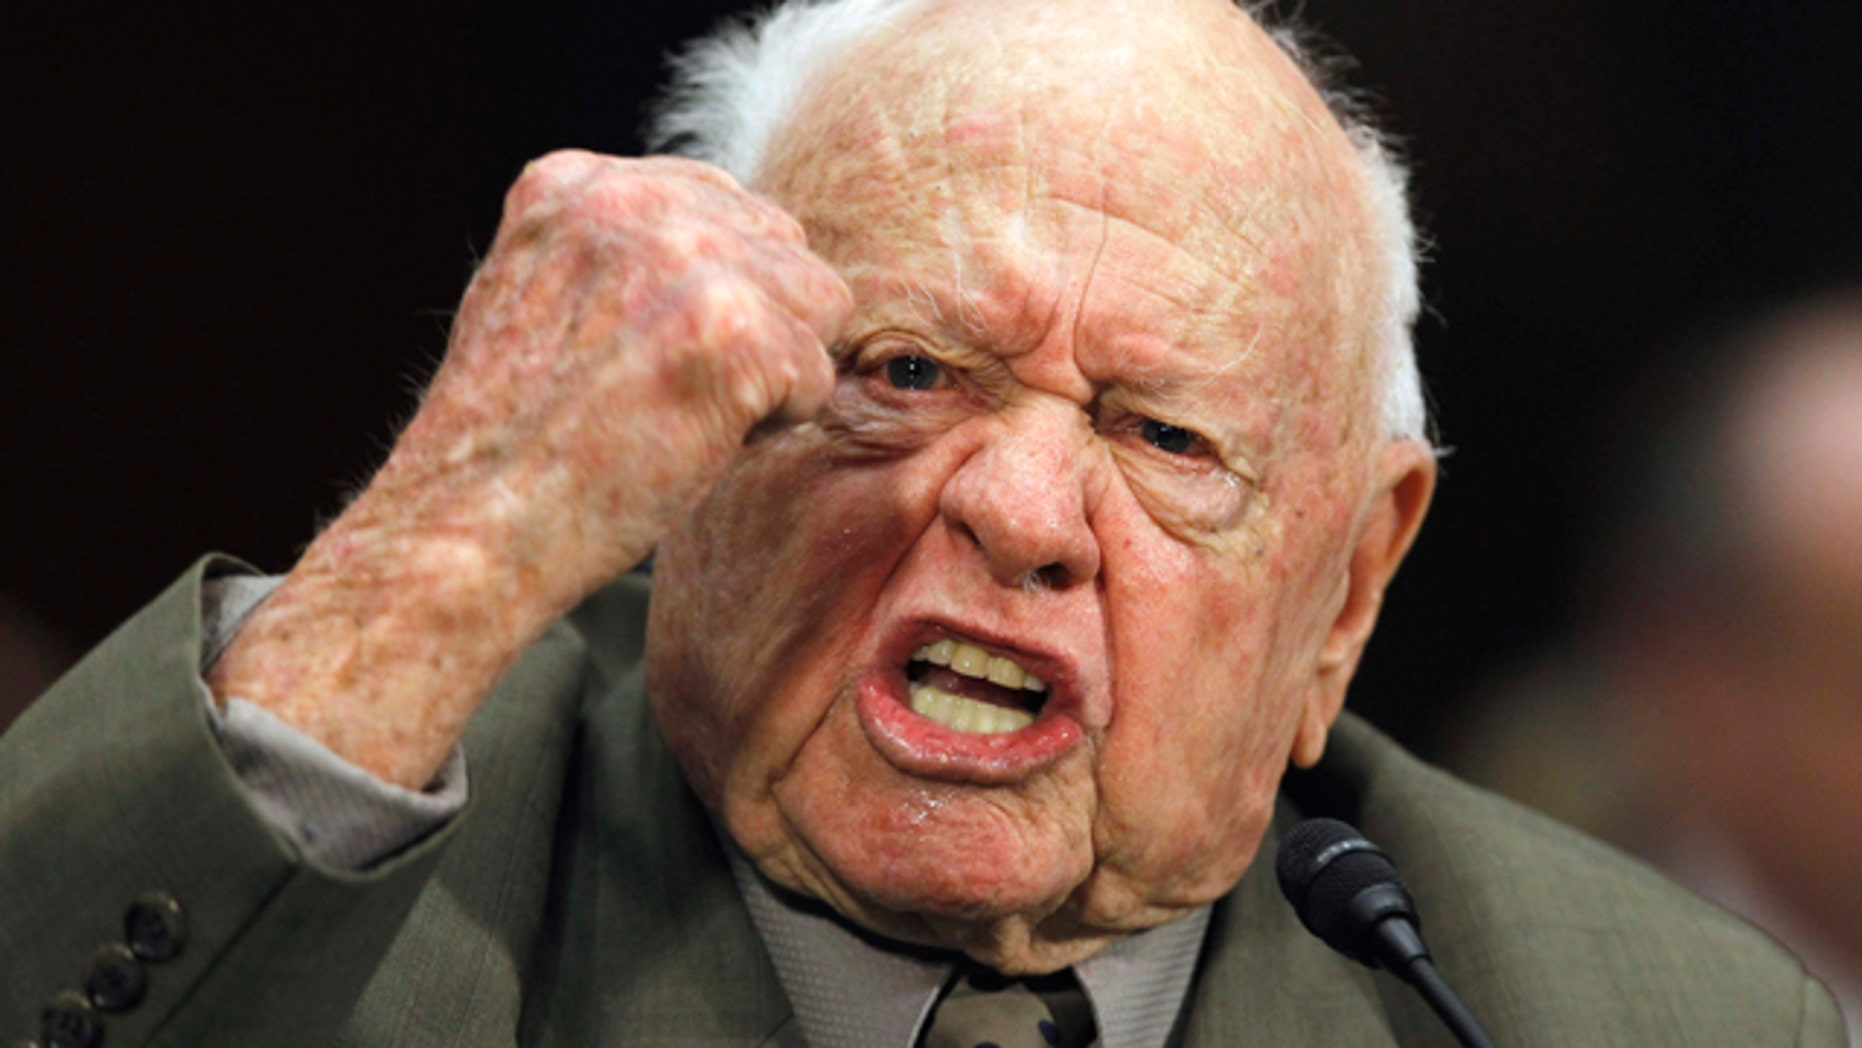 March 2: Mickey Rooney testifies about elder abuse before the Senate Aging Committee on Capitol Hill.